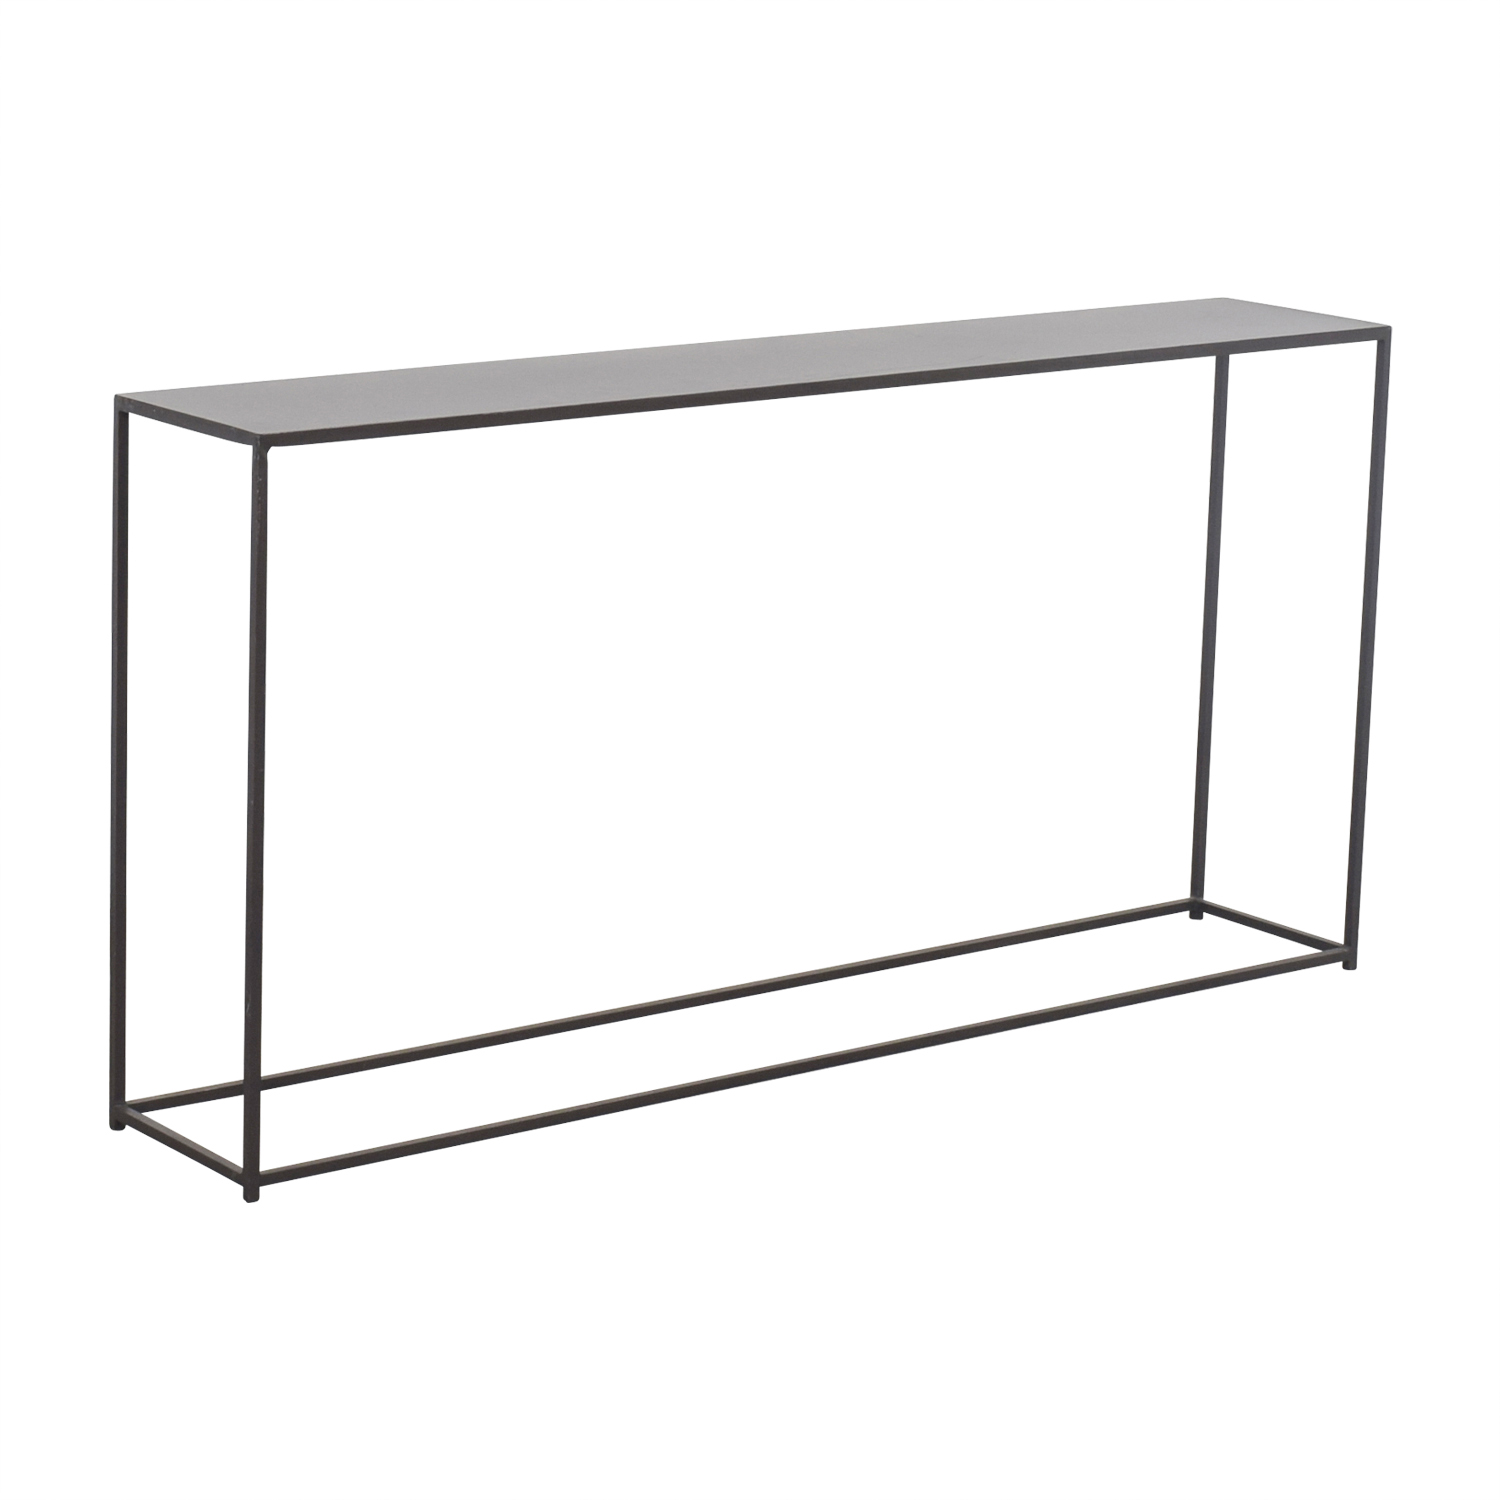 CB2 CB2 Mill Narrow Console Table coupon